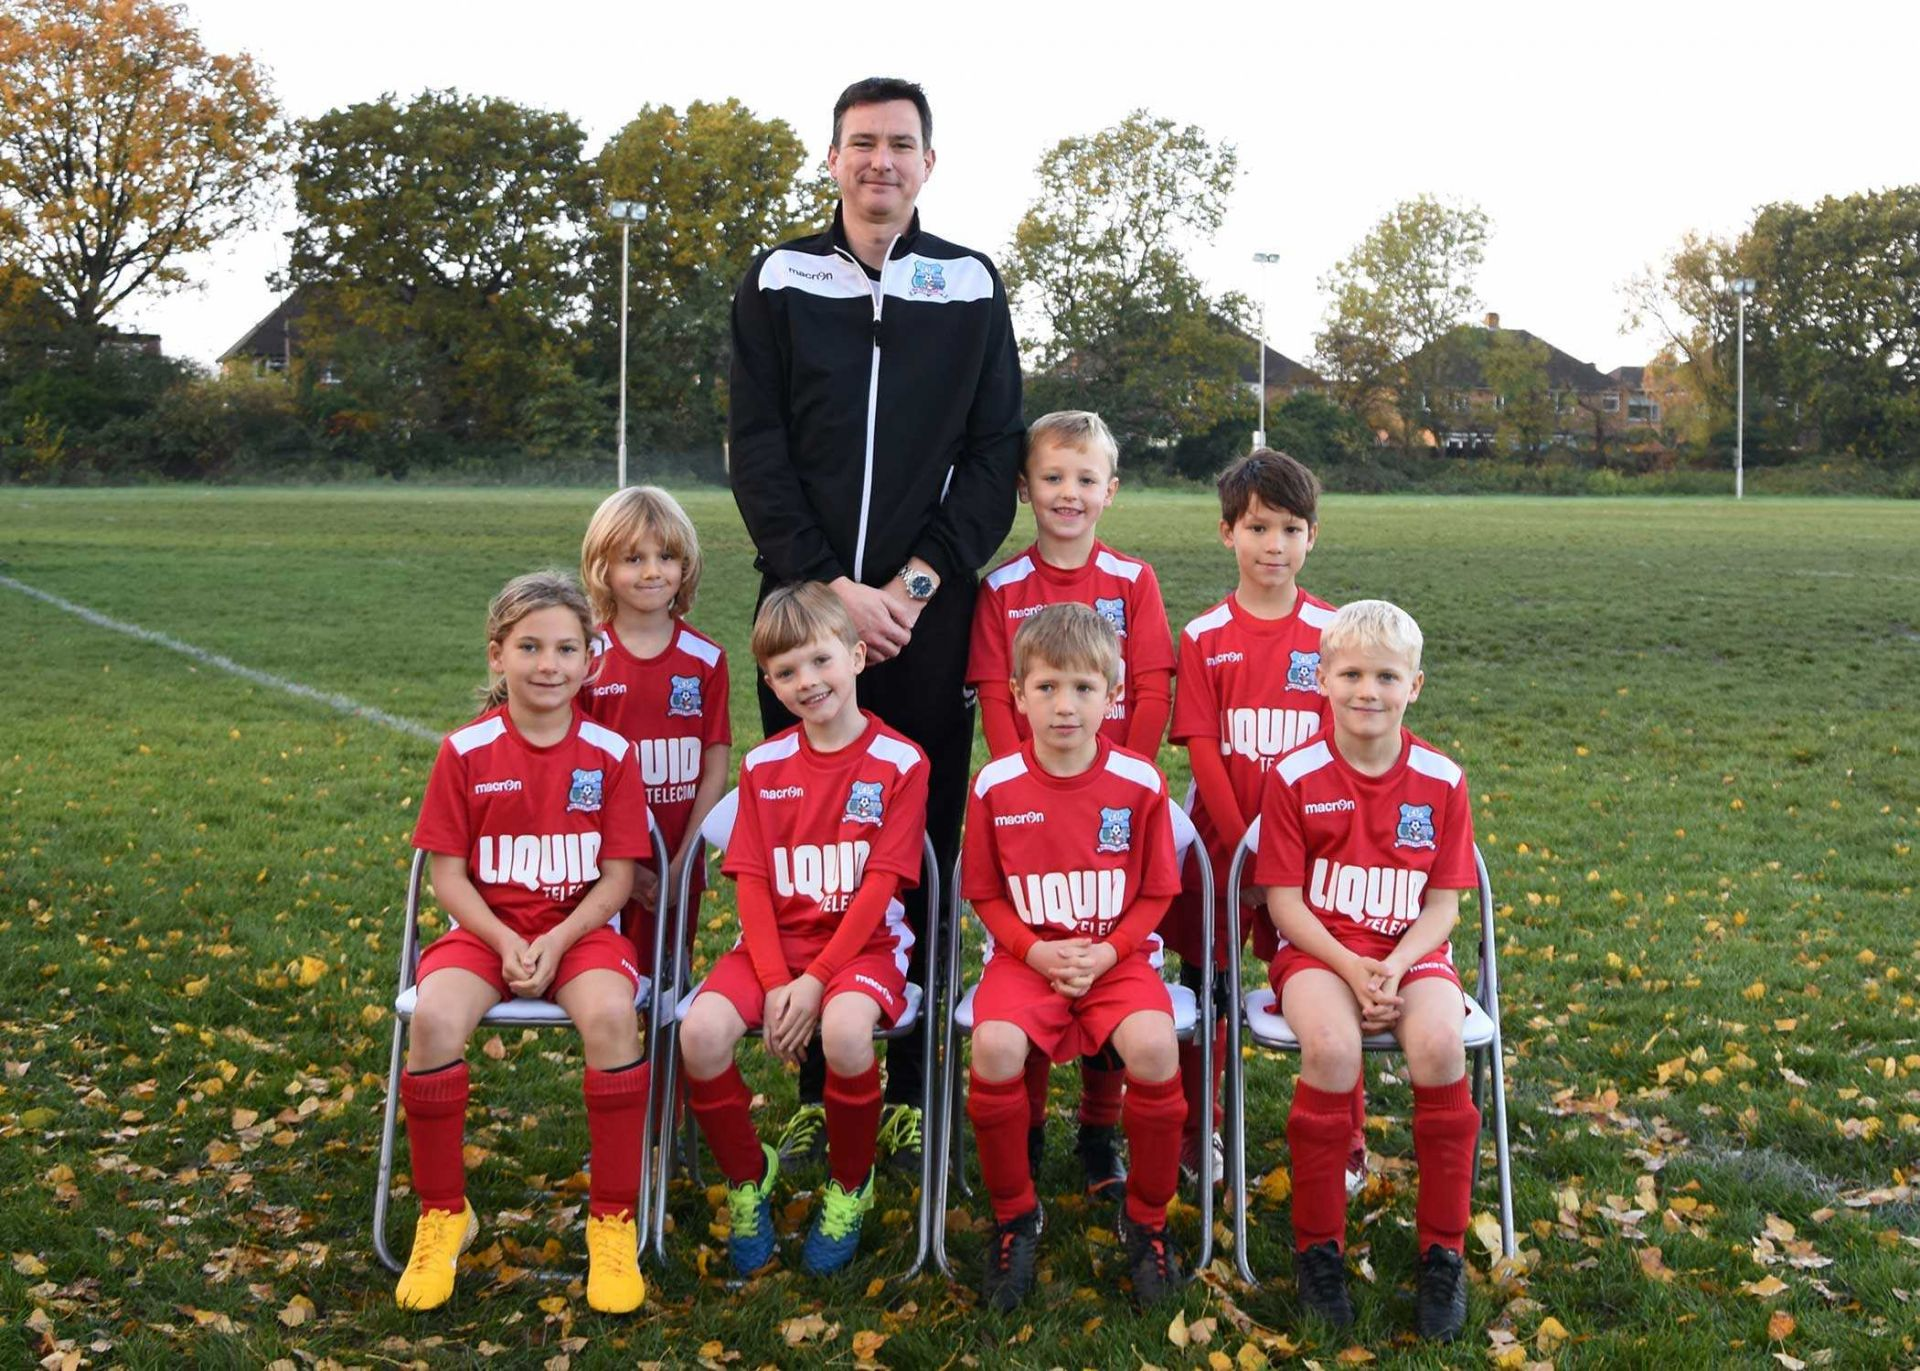 WH Youth FC Website Teams U9 Falcons 1